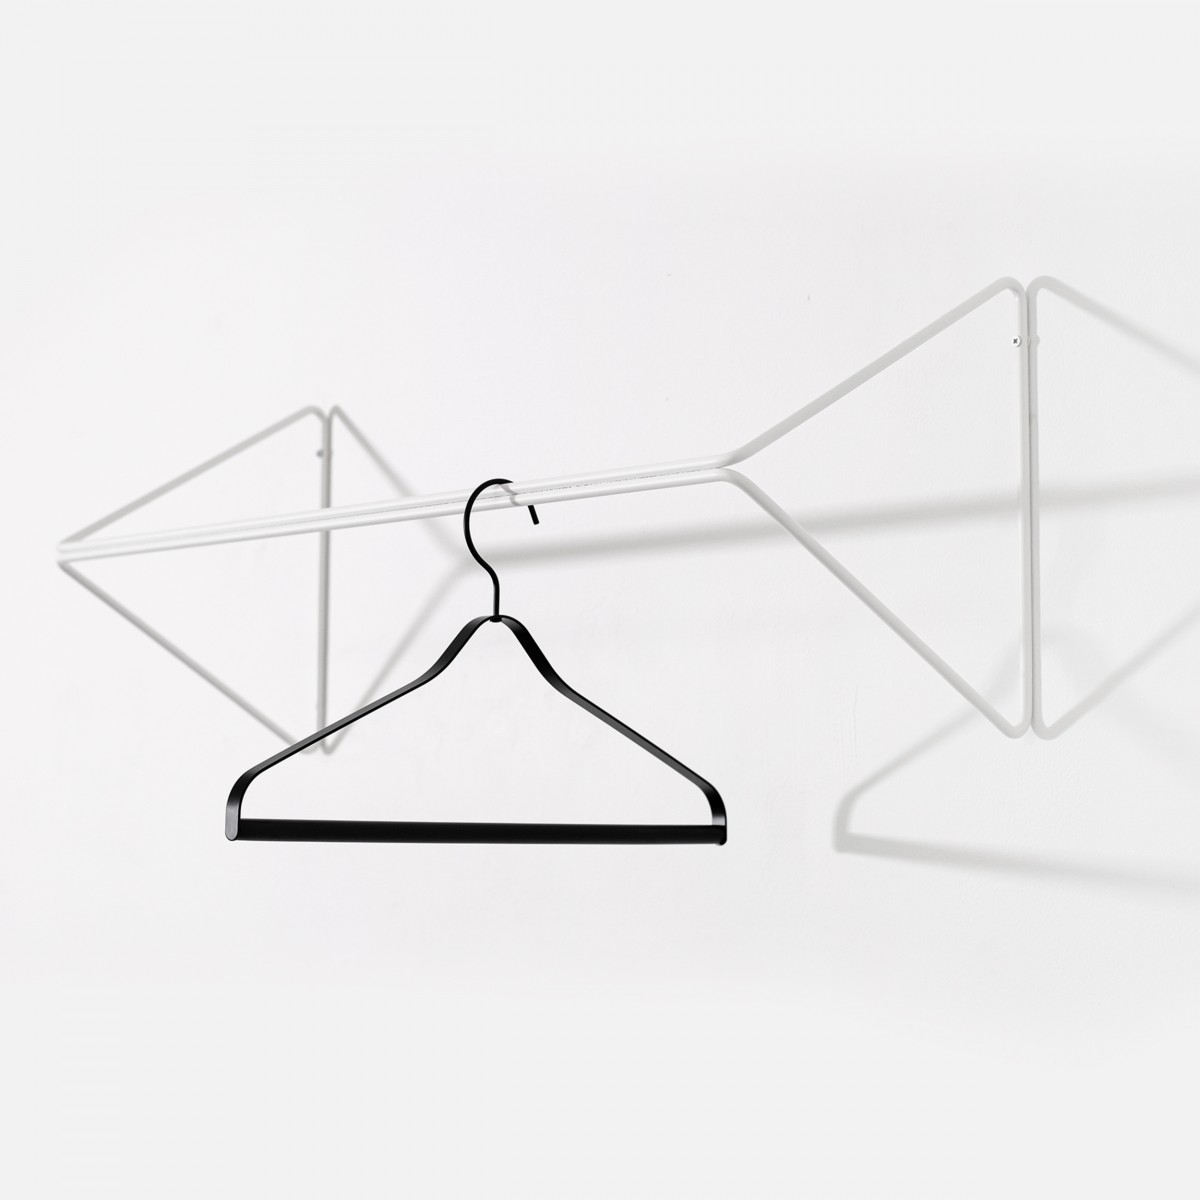 SYNC Garderobe | Result Objects